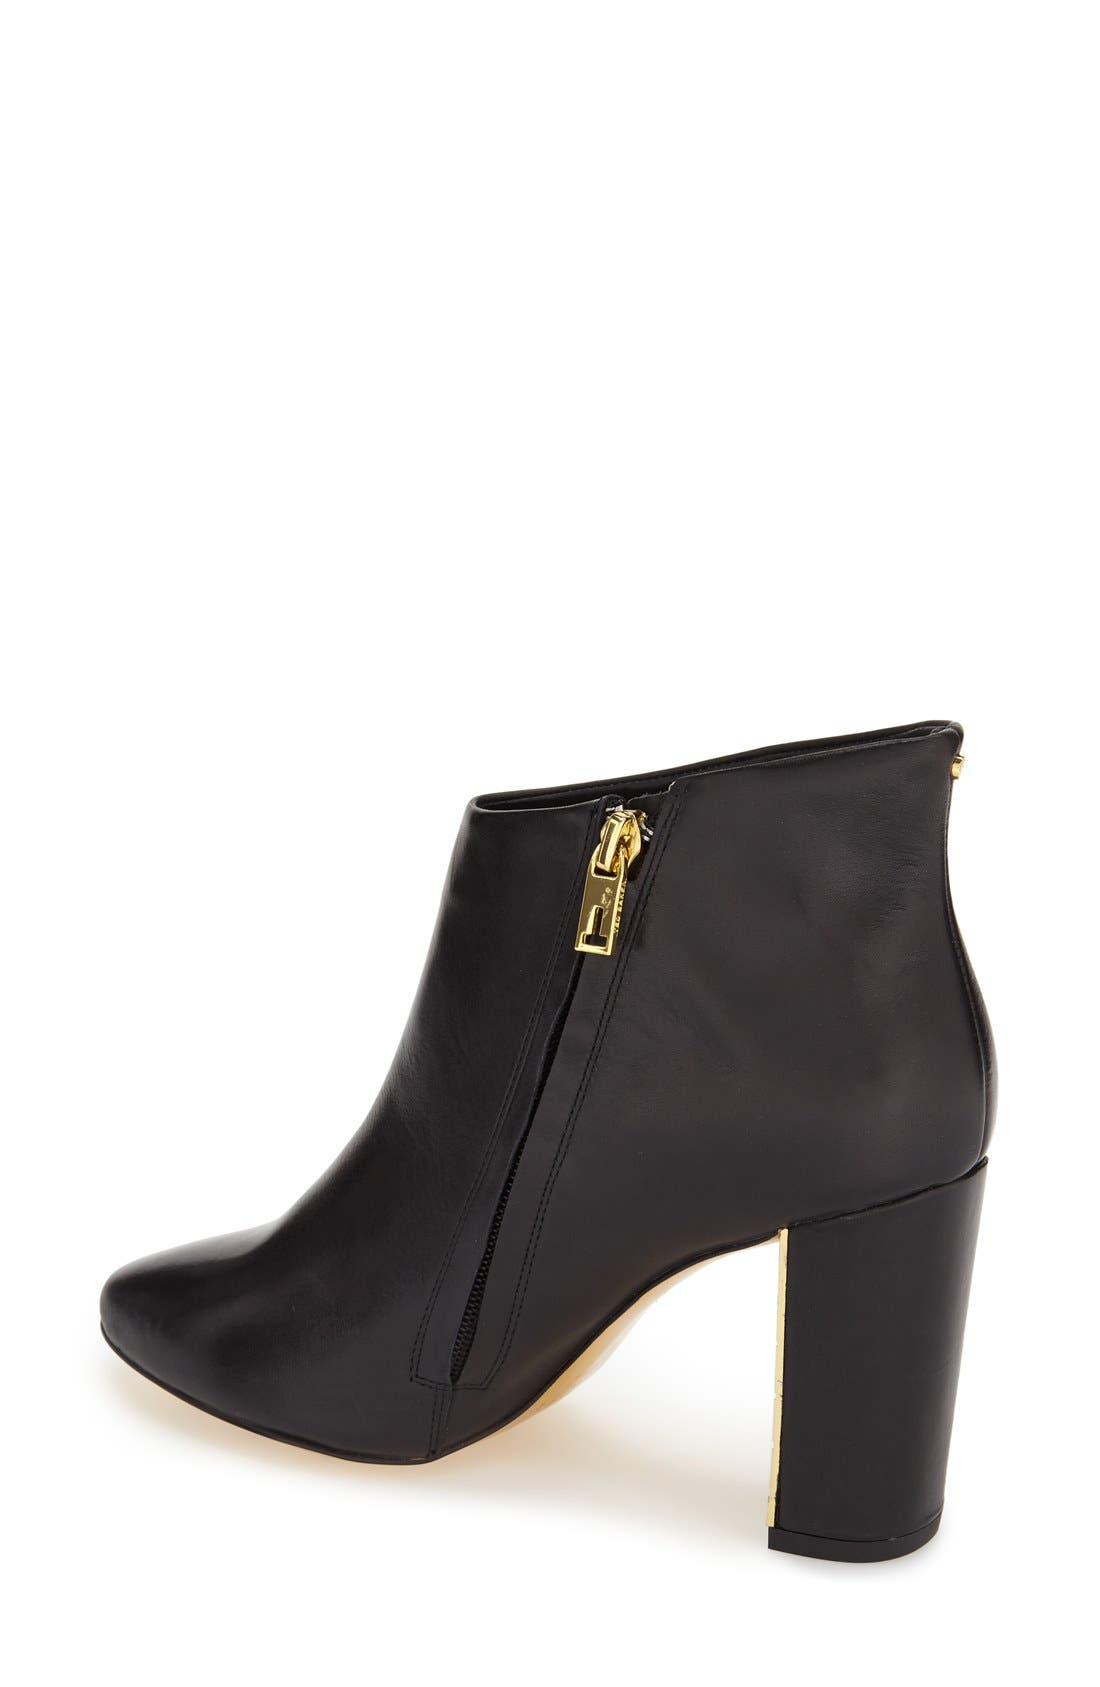 Alternate Image 2  - Ted Baker London 'Lowrenna' Ankle Bootie (Women)